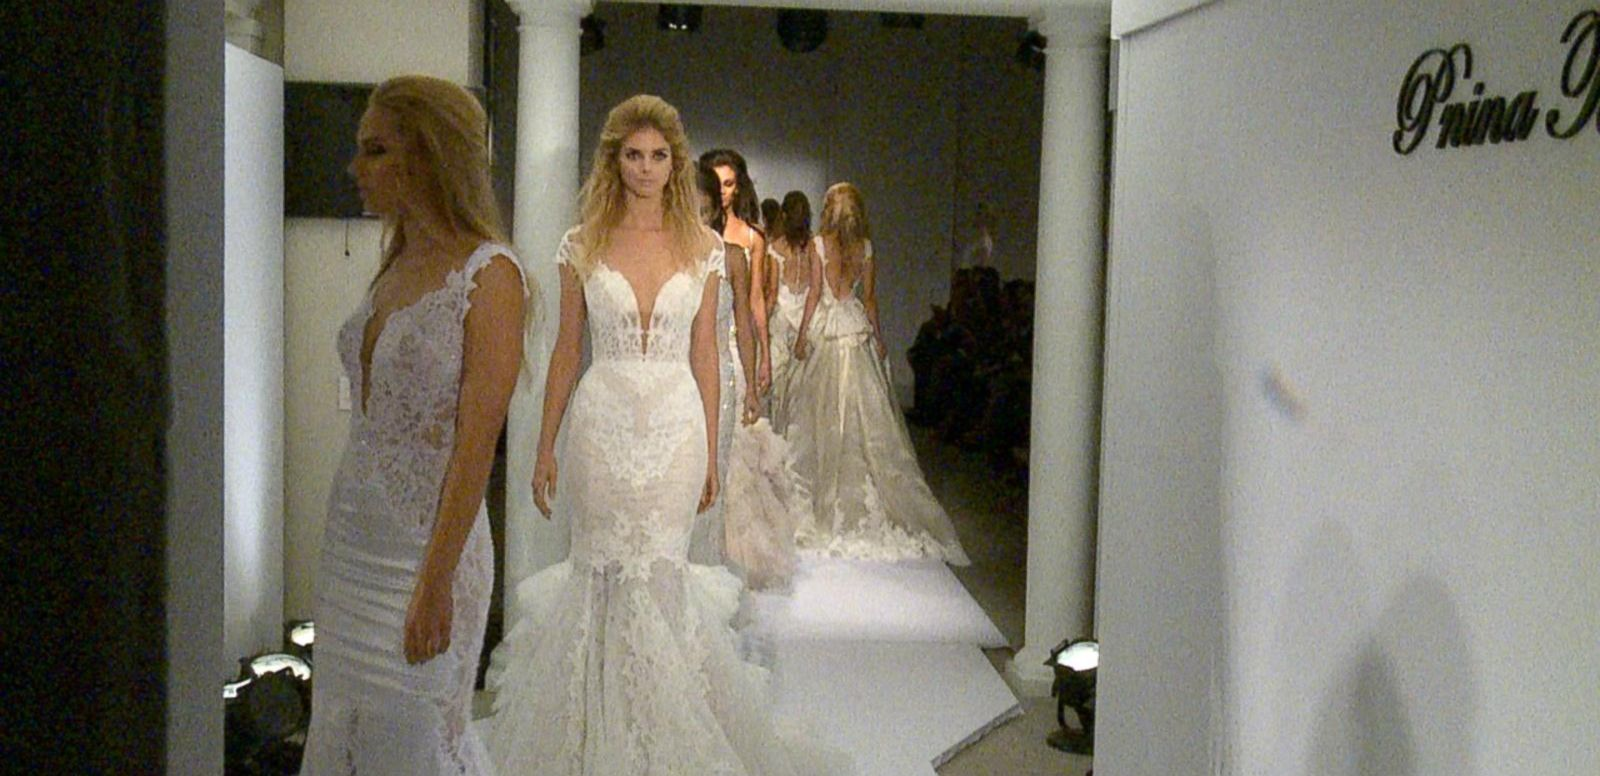 GOSTREAM: Pnina Tornai Premieres New Collection During Bridal Fashion Week